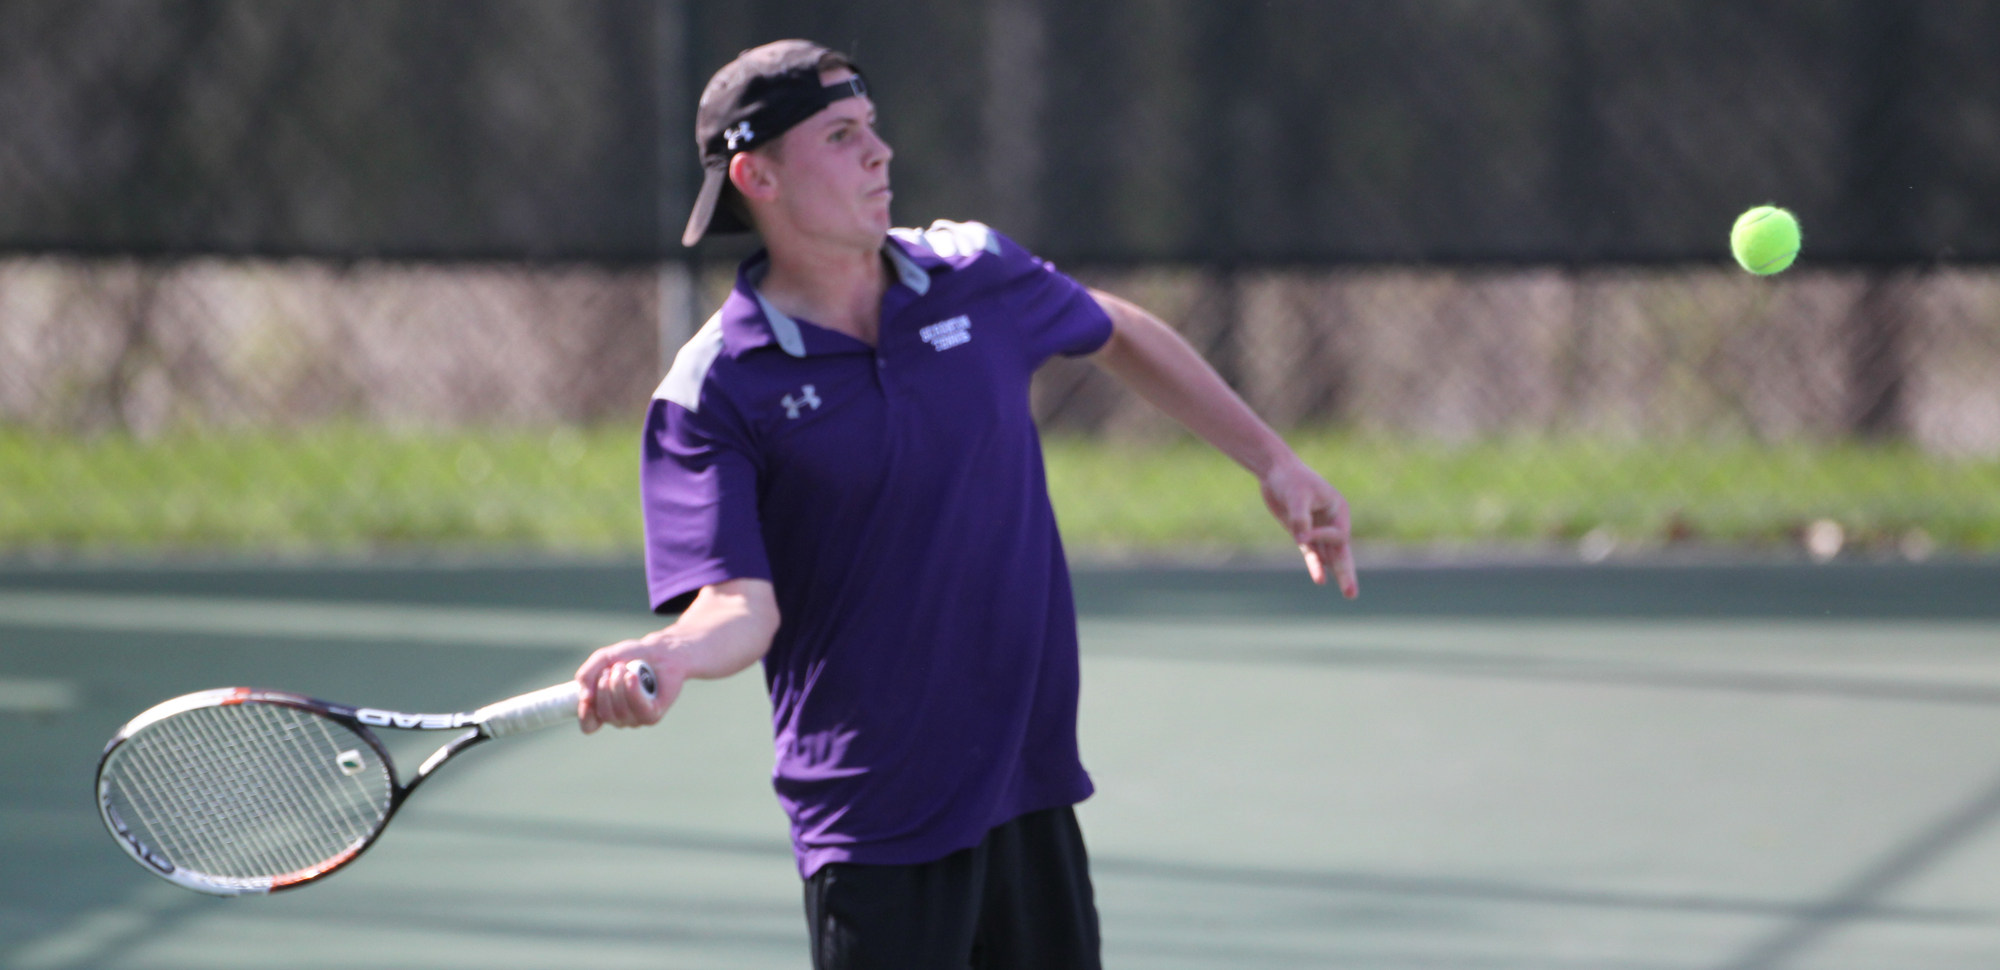 Senior Alexander Ochalski was one of four two-time winners on the day for the men's tennis team, as they rolled to an 8-1 win at Catholic on Saturday.